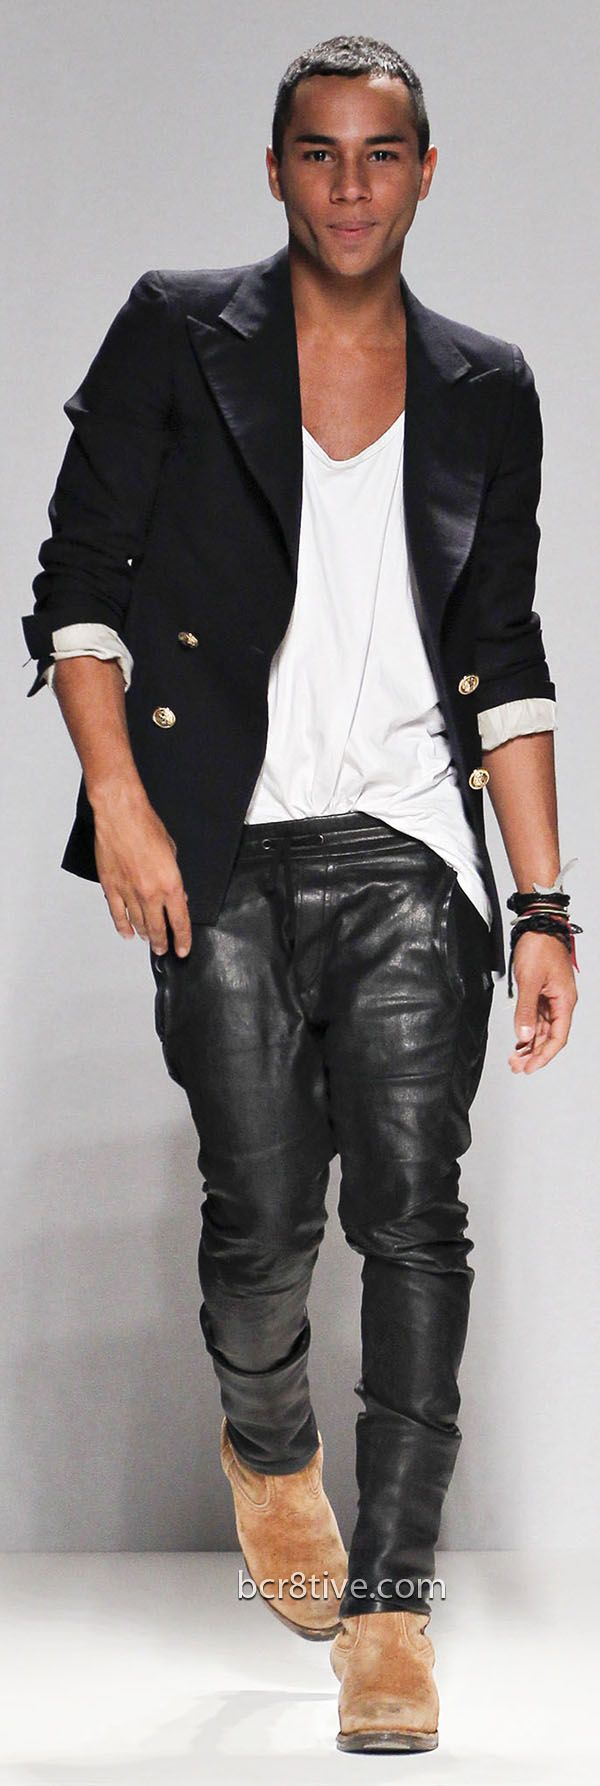 The talented, and adorable, Olivier Rousteing Head Designer House of Balmain! Leather jeans v